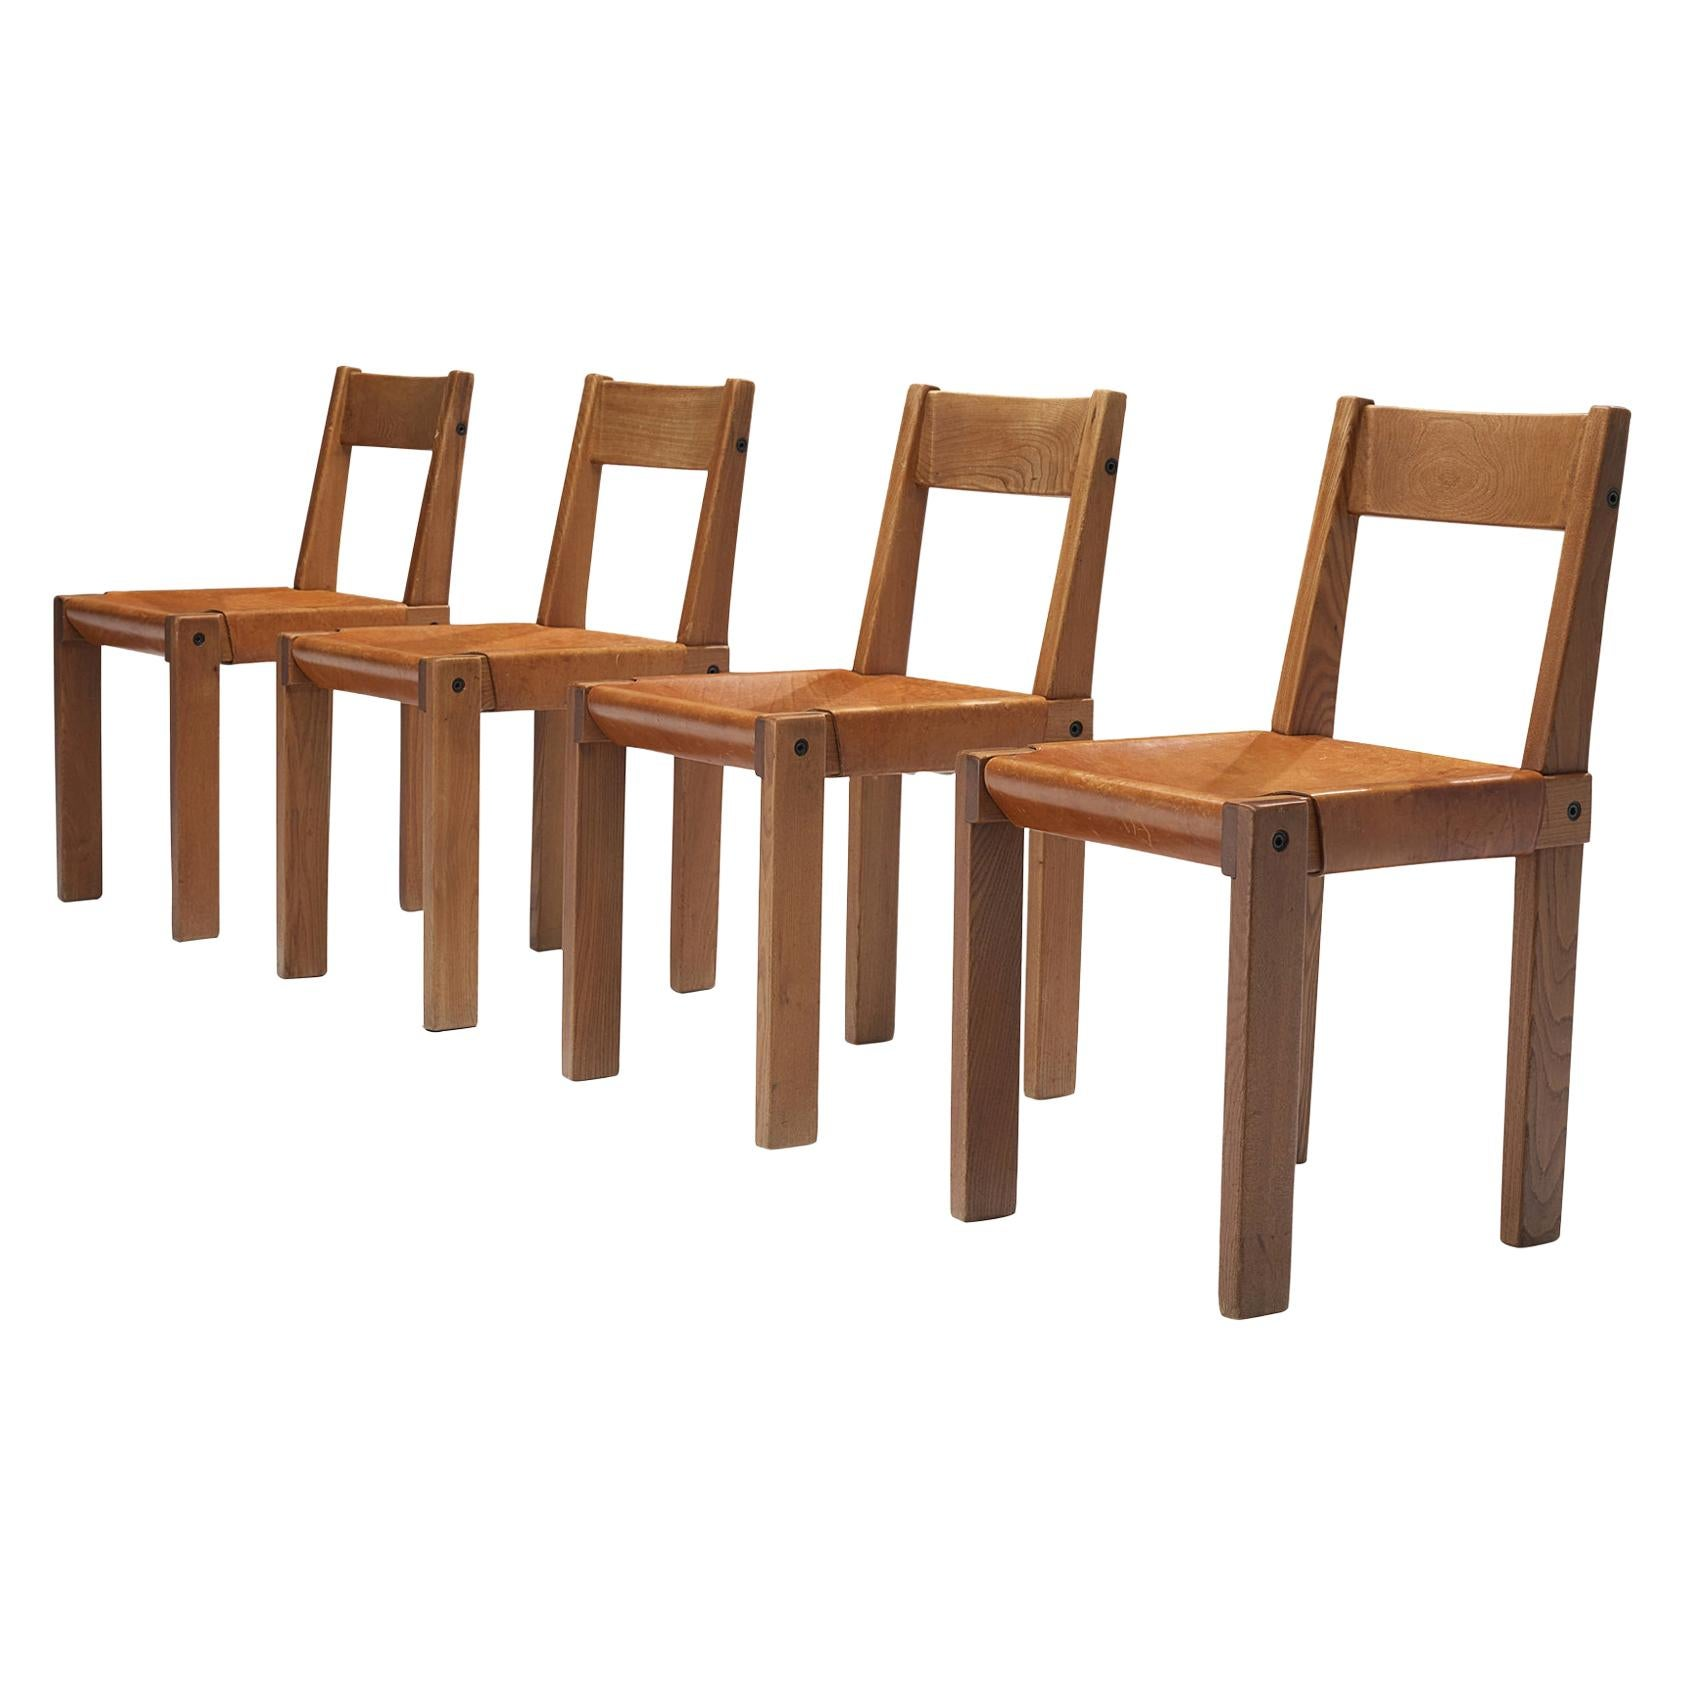 Pierre Chapo 'S24' Dining Chairs in Solid Elm and Cognac Leather